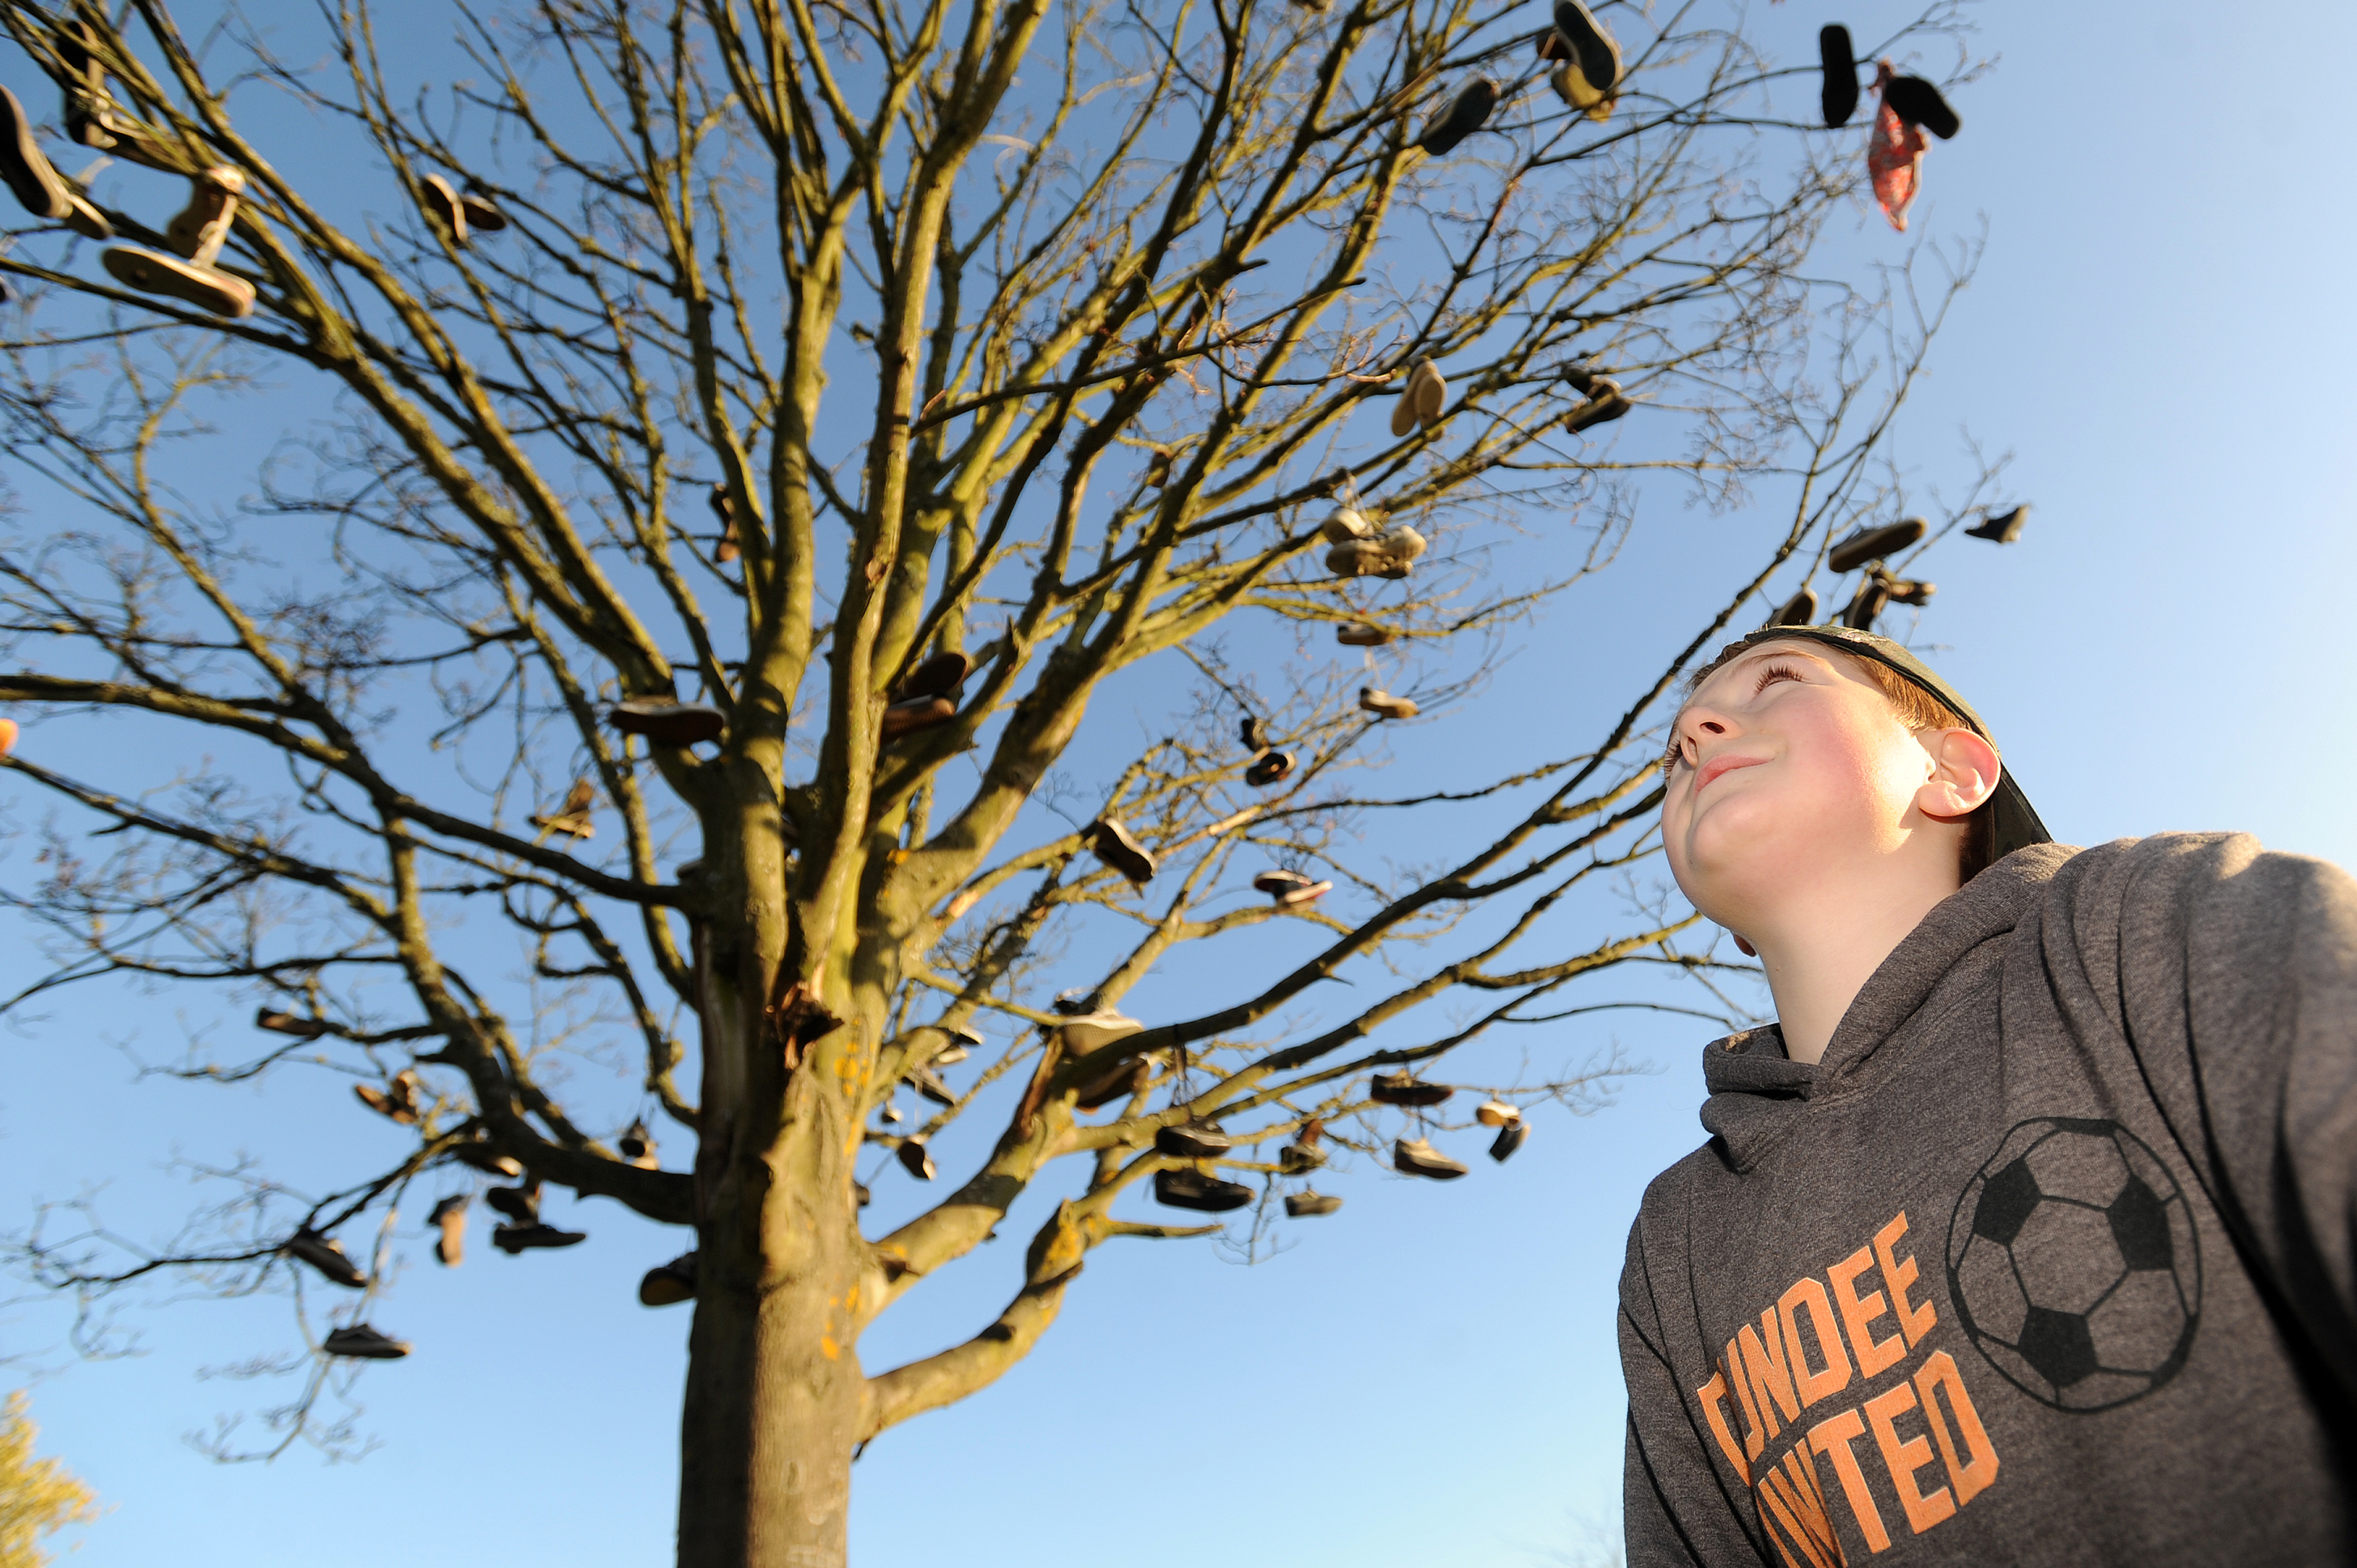 Logan McKinlay, 10, checking out the unusual tree.